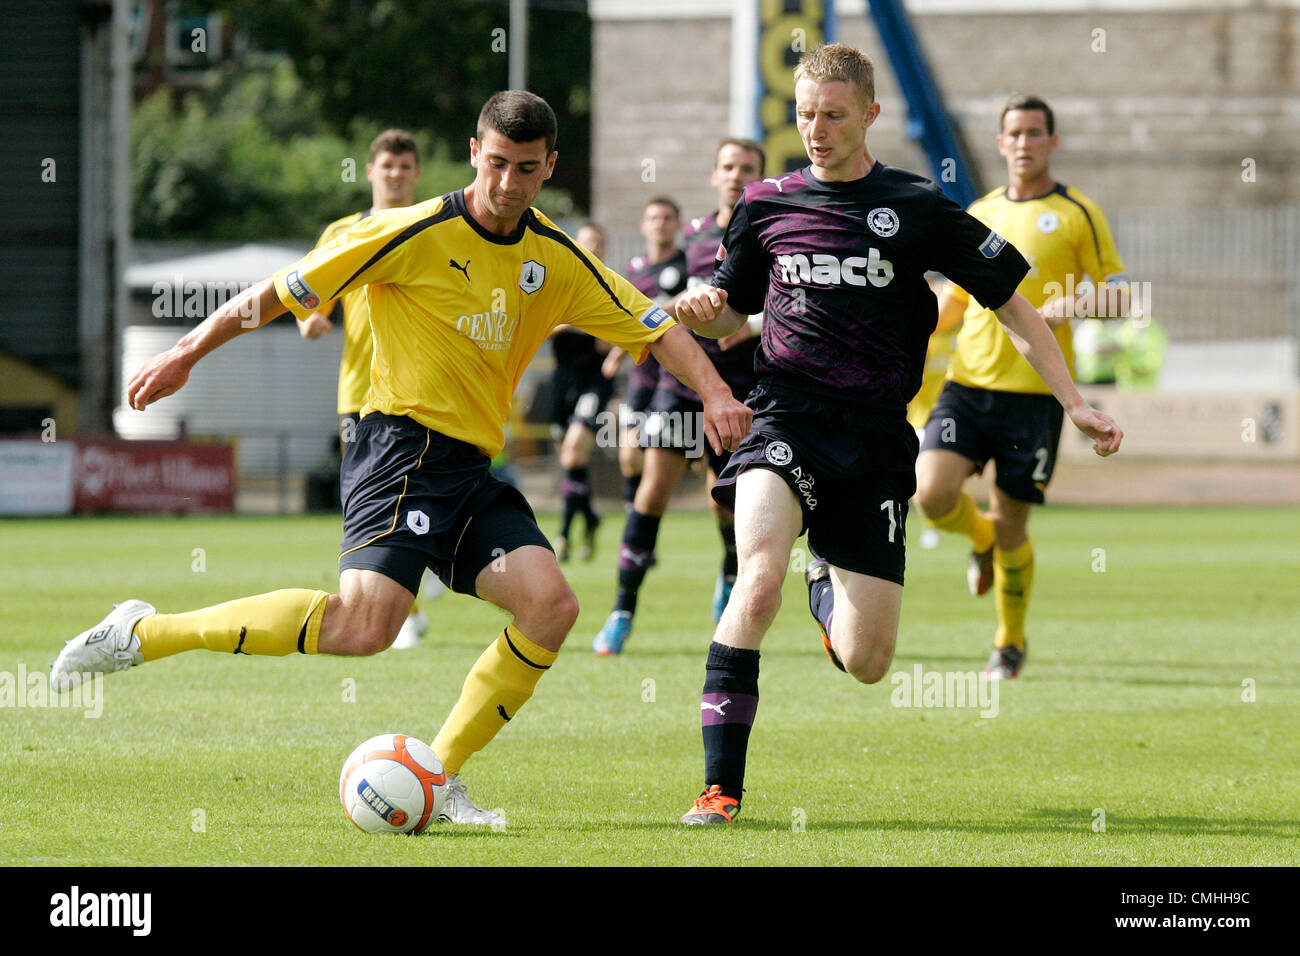 11th Aug 2012. 11.08.2012 Glasgow, Scotland. 11 Chris Erskine and 4 Jonny Flynn in action during the Scottish Football - Stock Image